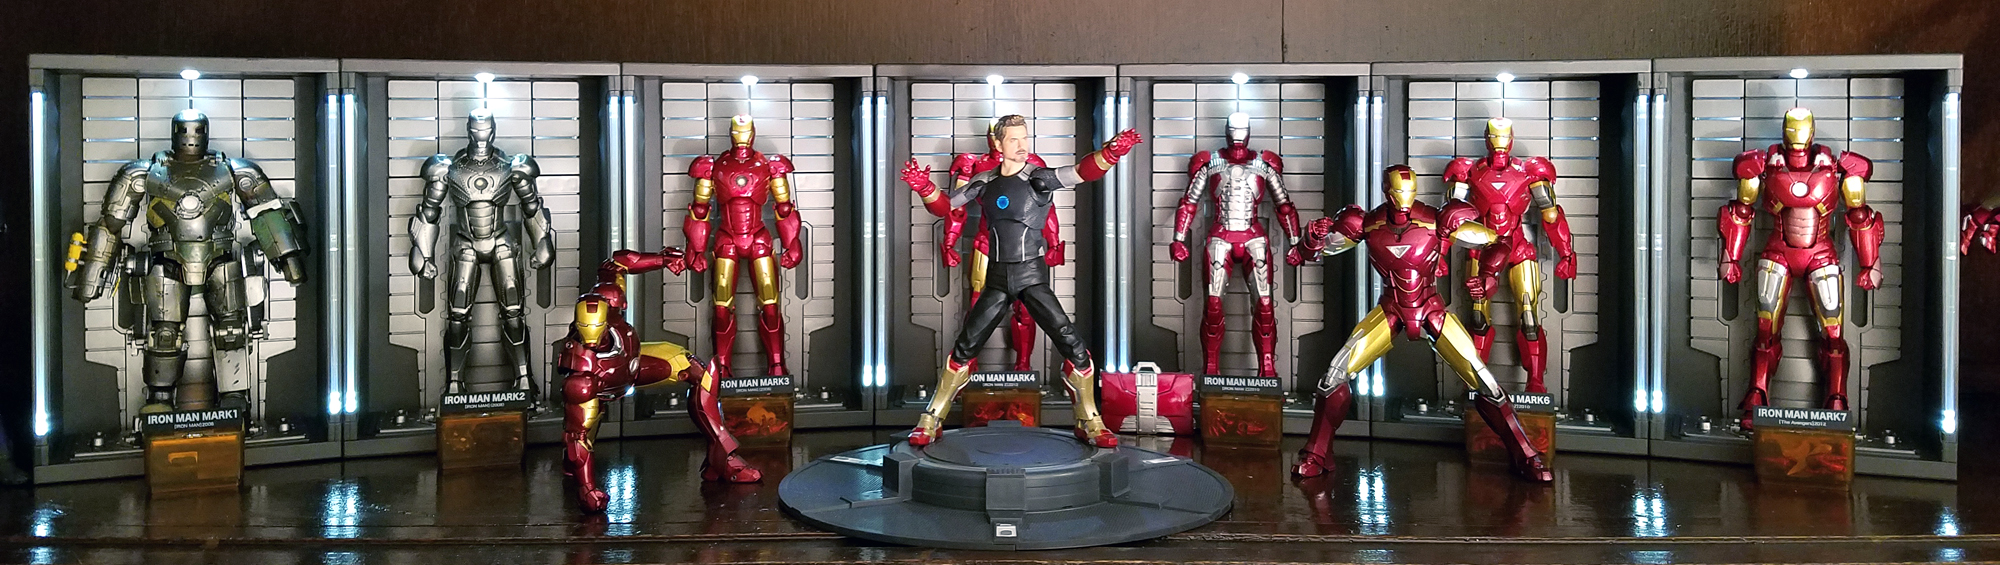 Revo_SHF_Iron_Man_-_Hall_of_Armor.jpg